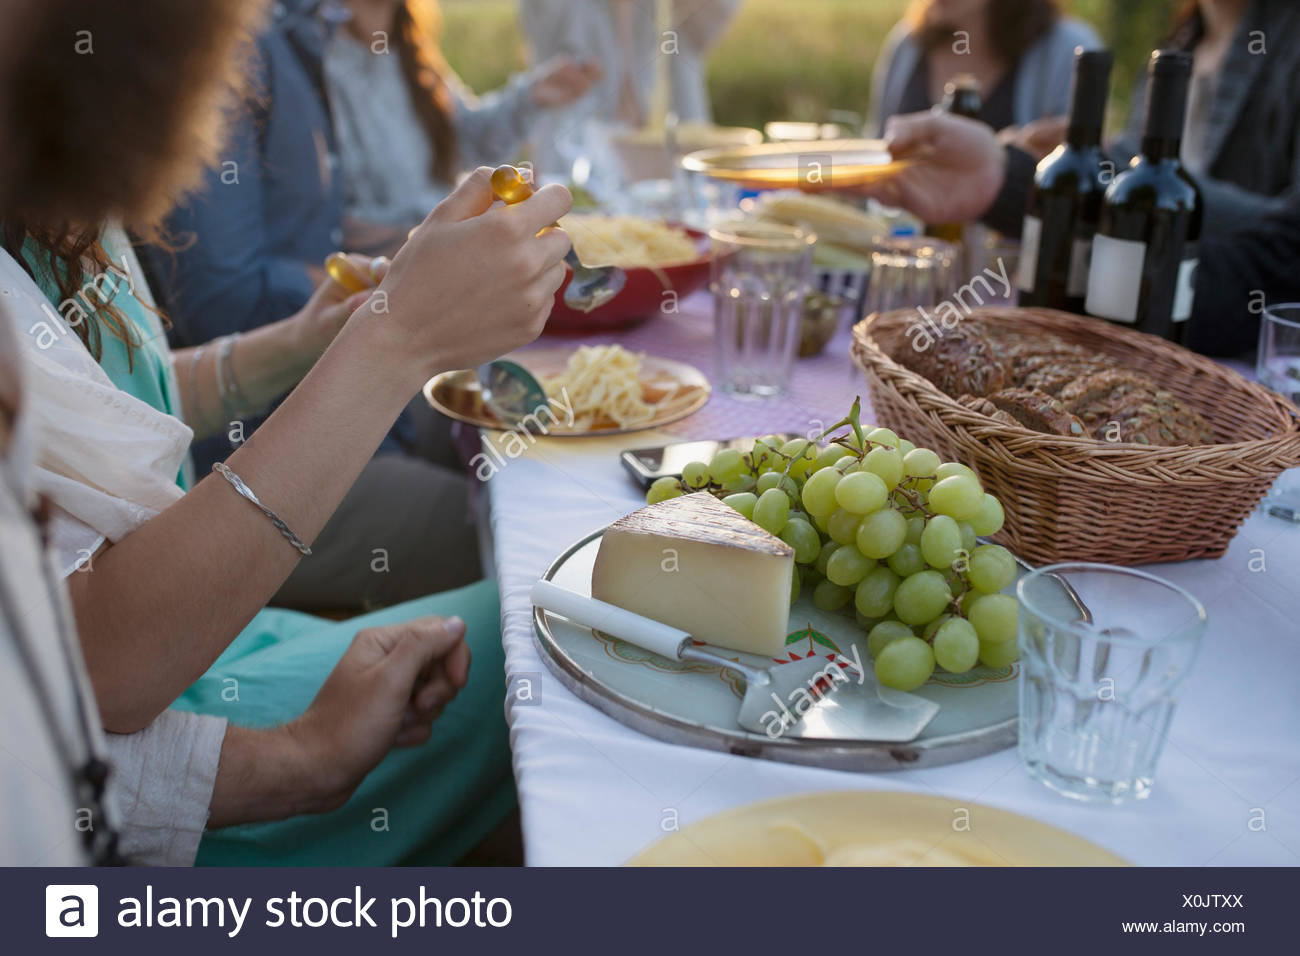 Grapes and cheese on platter at garden party dinner table - Stock Image